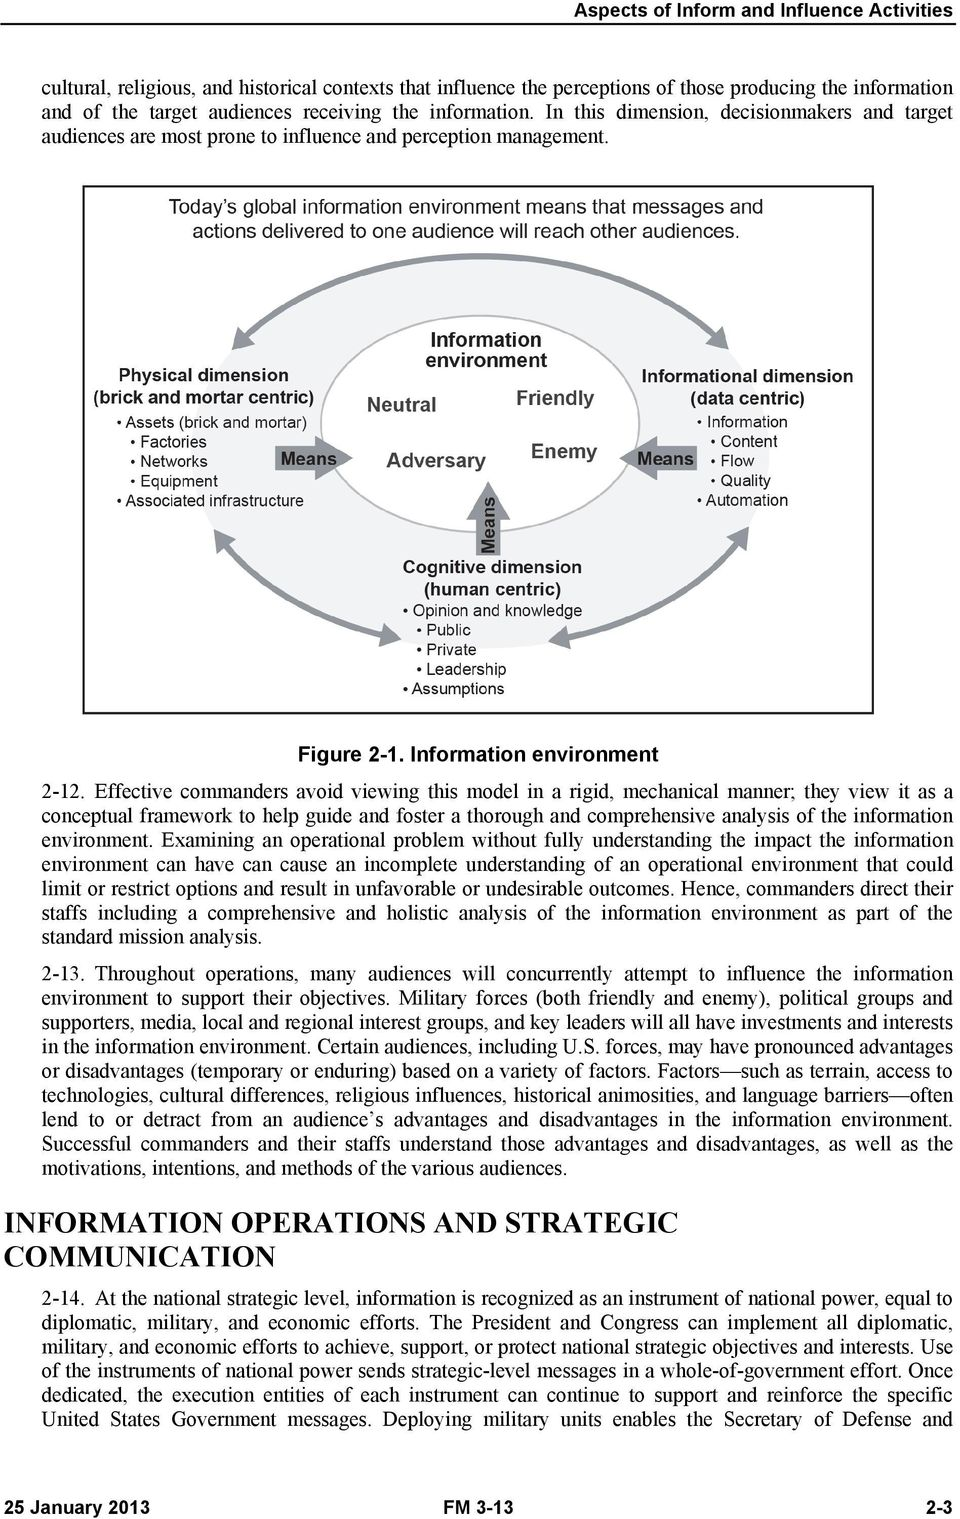 Effective commanders avoid viewing this model in a rigid, mechanical manner; they view it as a conceptual framework to help guide and foster a thorough and comprehensive analysis of the information